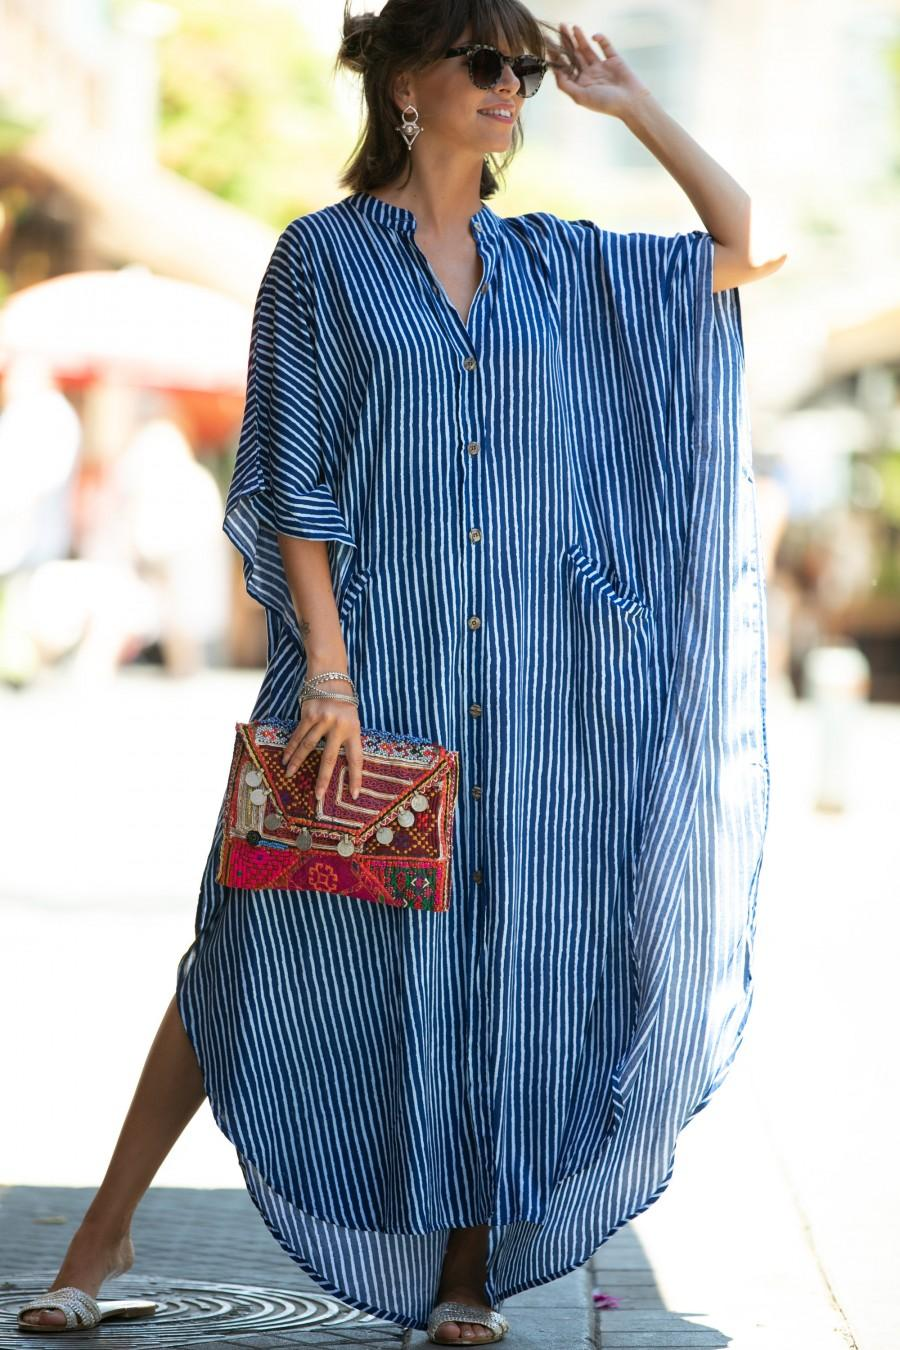 Wedding - Blue & White Striped Oversize Kaftan Dress, Bohemian Hipster Buttoned Caftan with Pockets, Summer Urban Vacation Hippie Plus size Maxi Dress